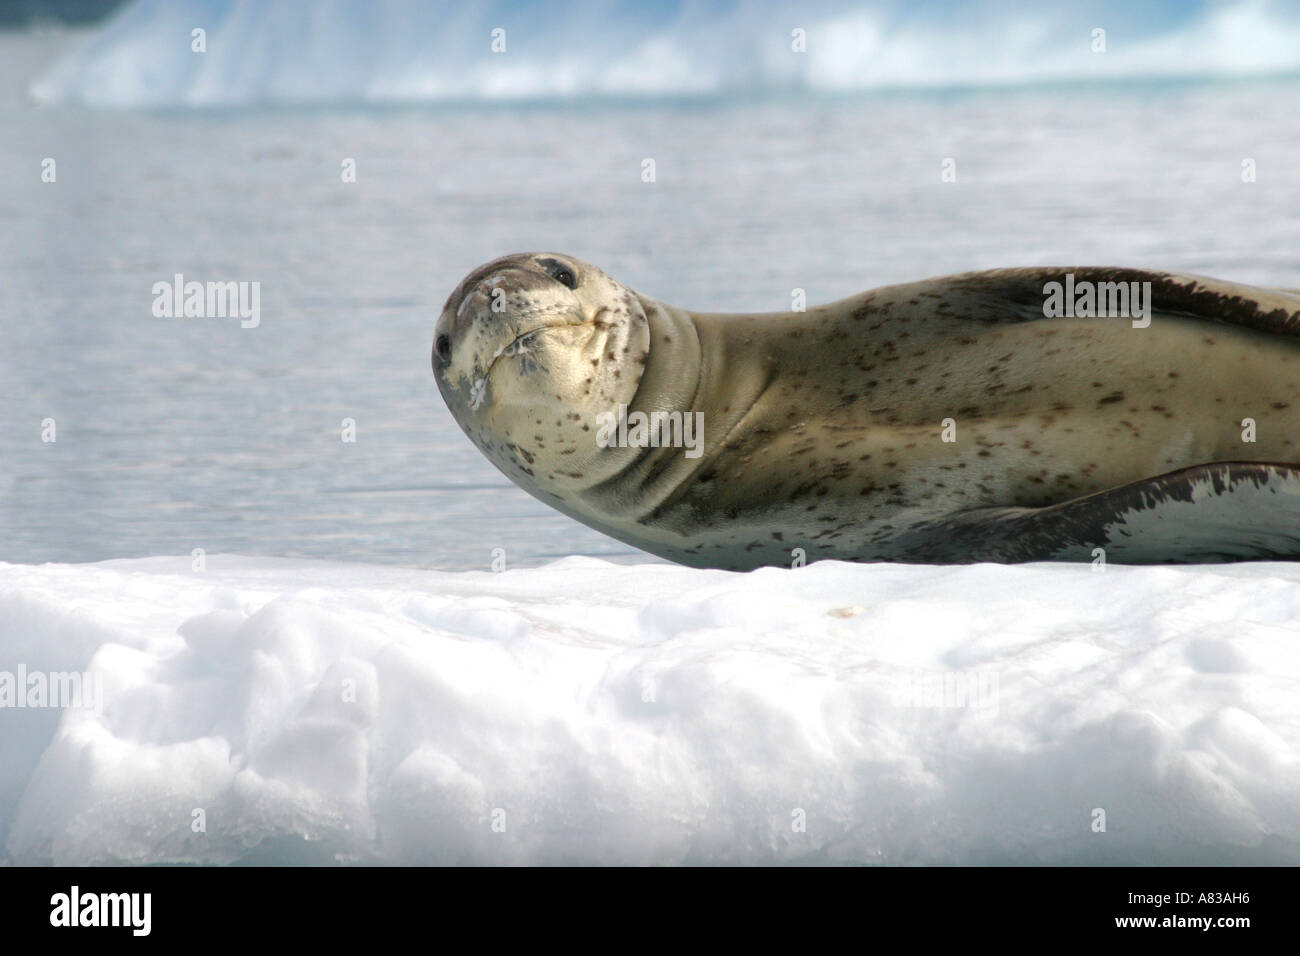 Leopard seal lying on a slab of sea ice in Antarctica - Stock Image